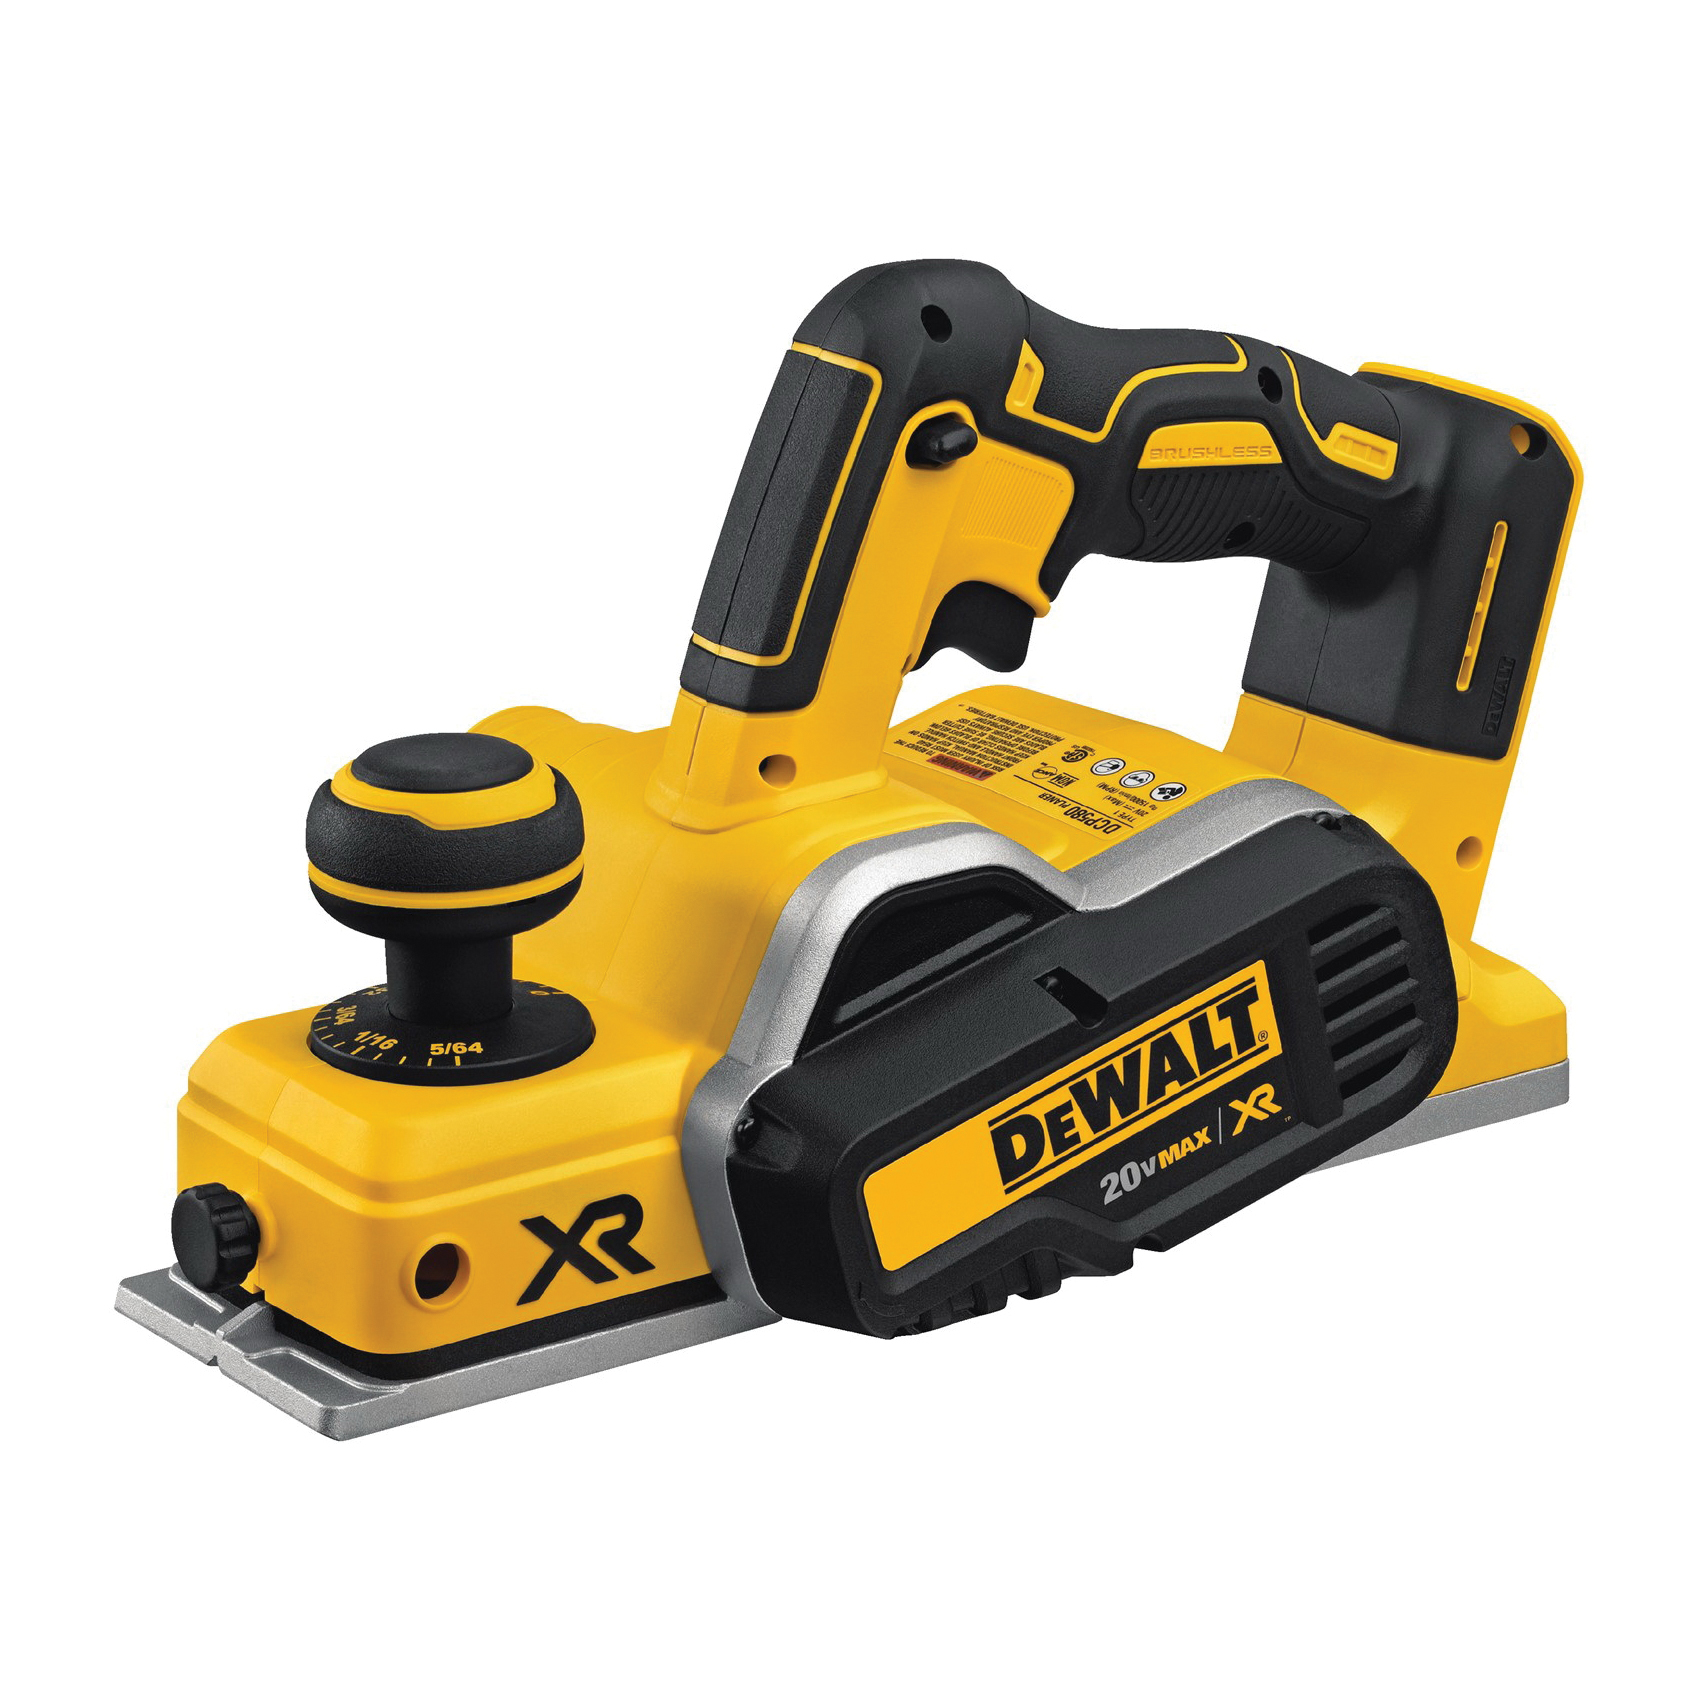 DeWALT® 20V MAX* DCP580B Brushless Portable Cordless Planer, 3-1/4 in W Cutting, 5/65 in Depth of Cut, 15000 rpm Speed, 20 V, Lithium-Ion Battery